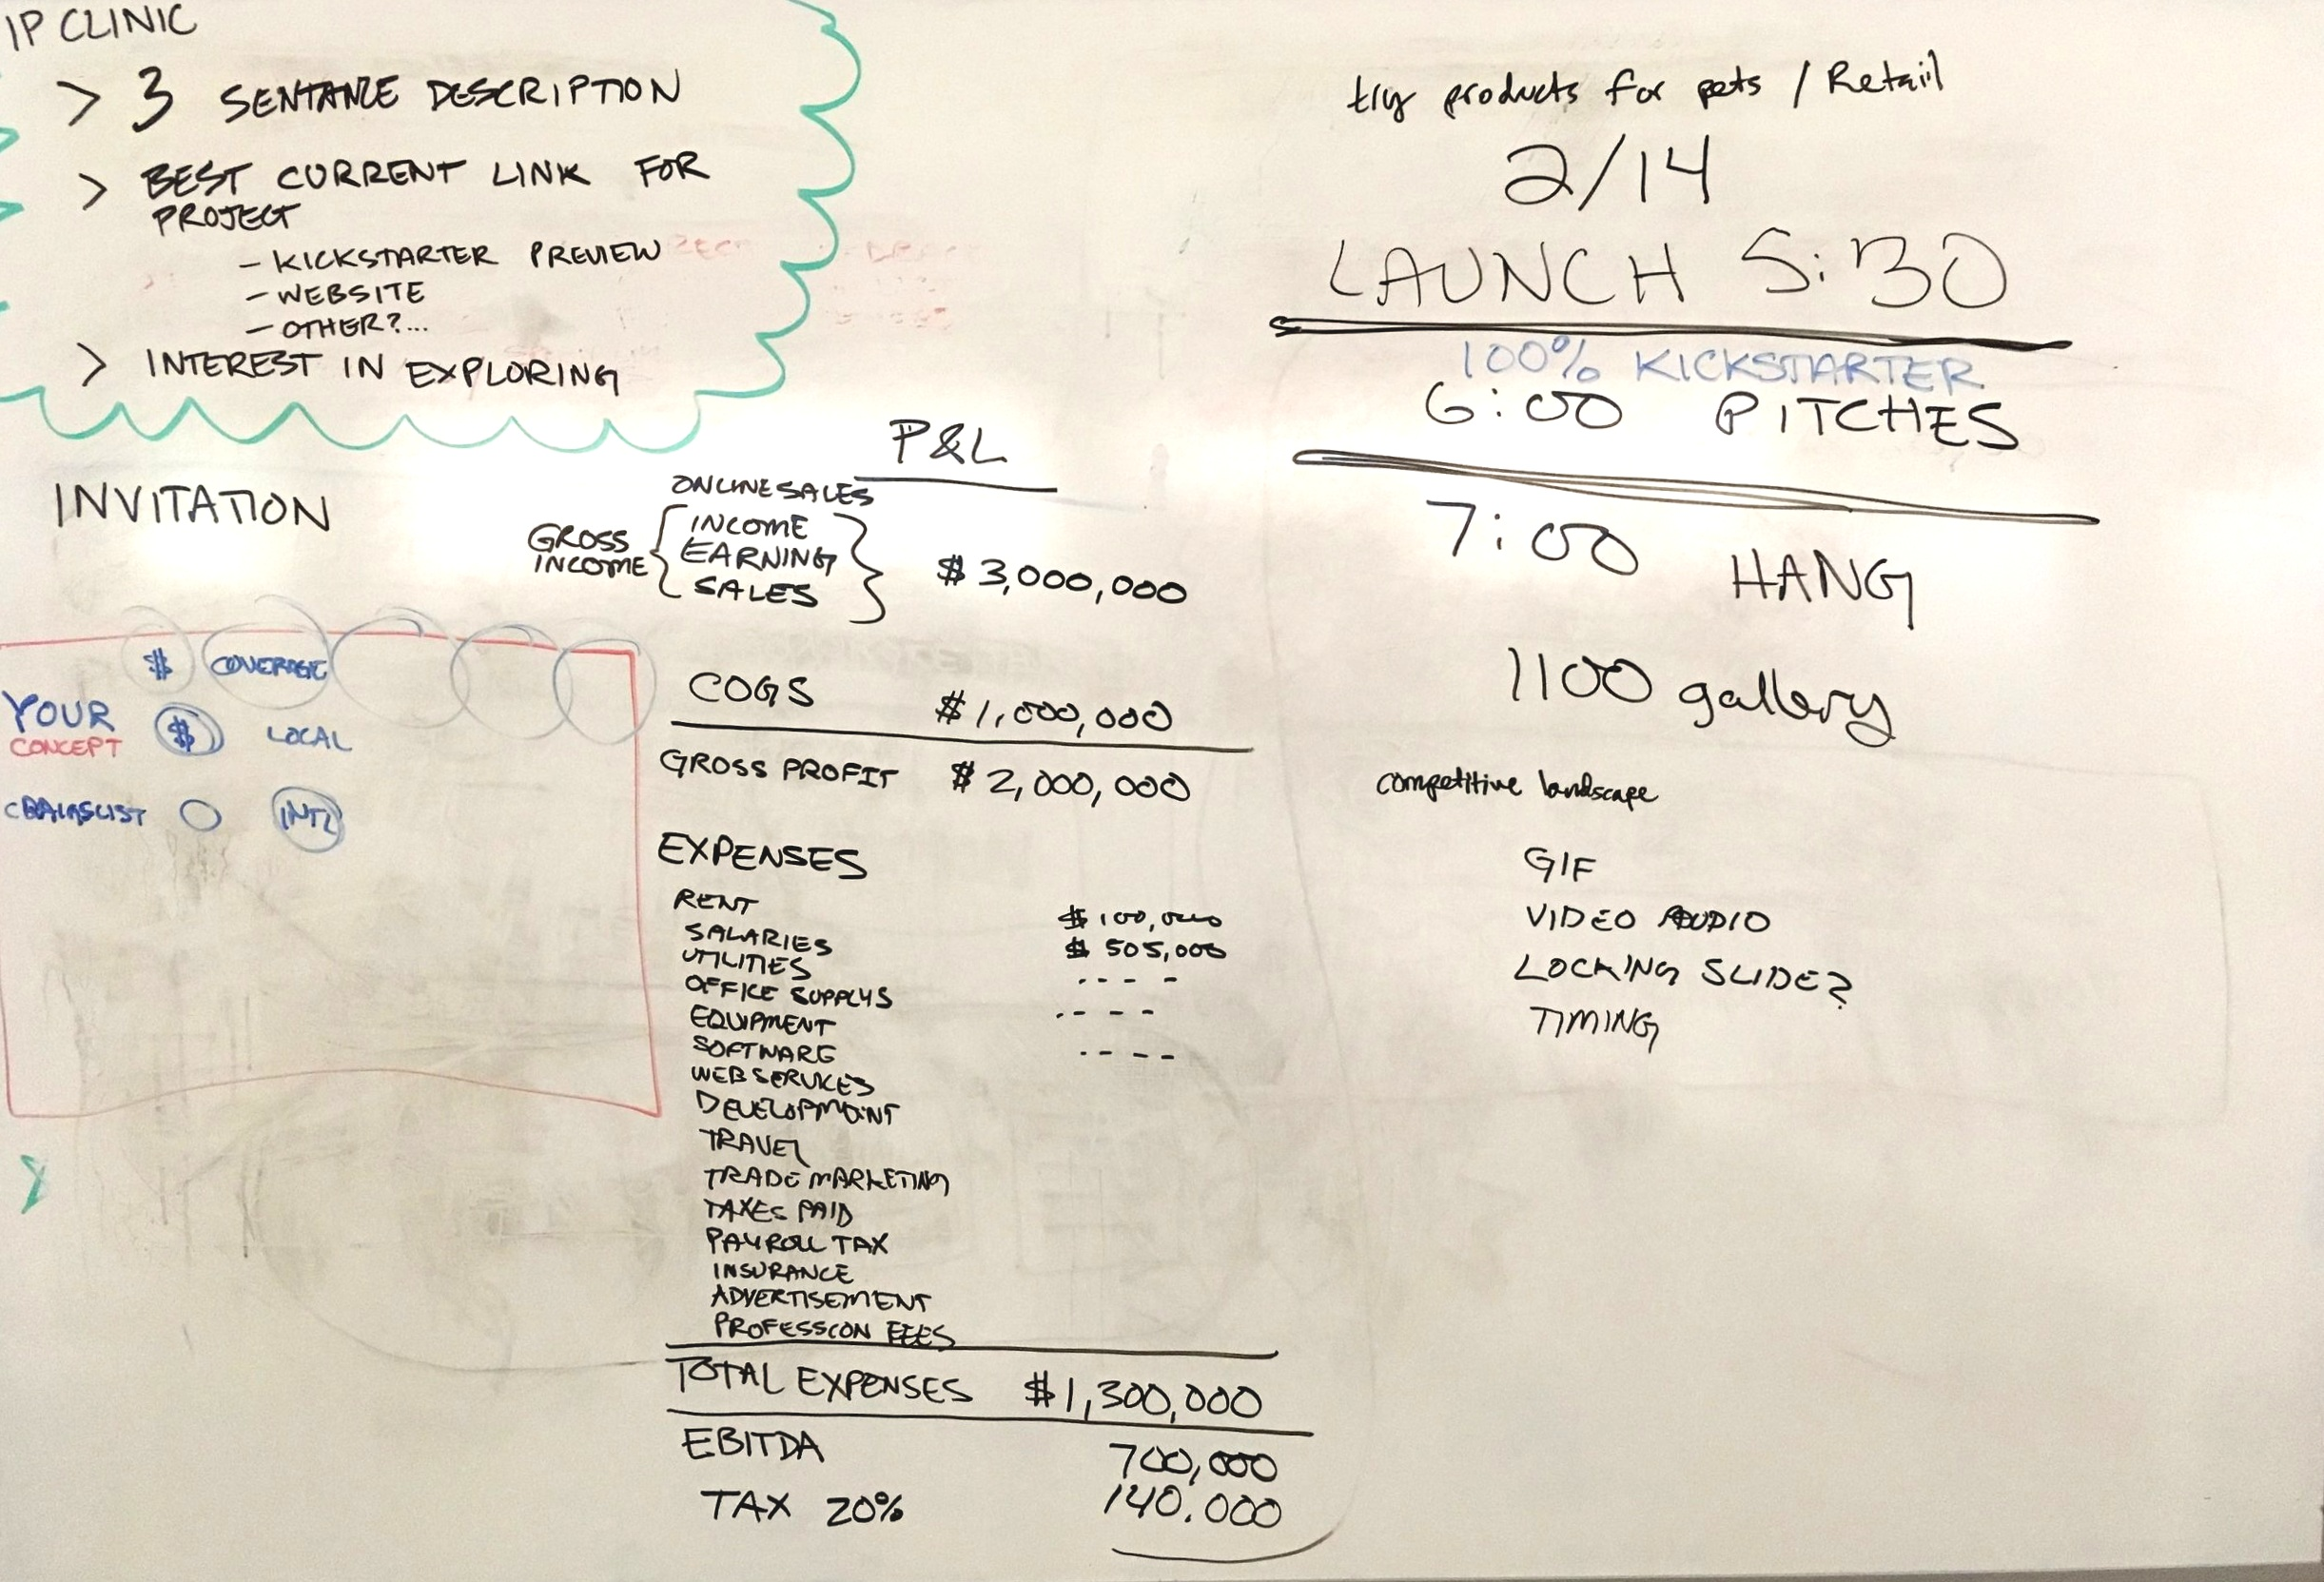 A smattering of notes. Income Statement in the middle.